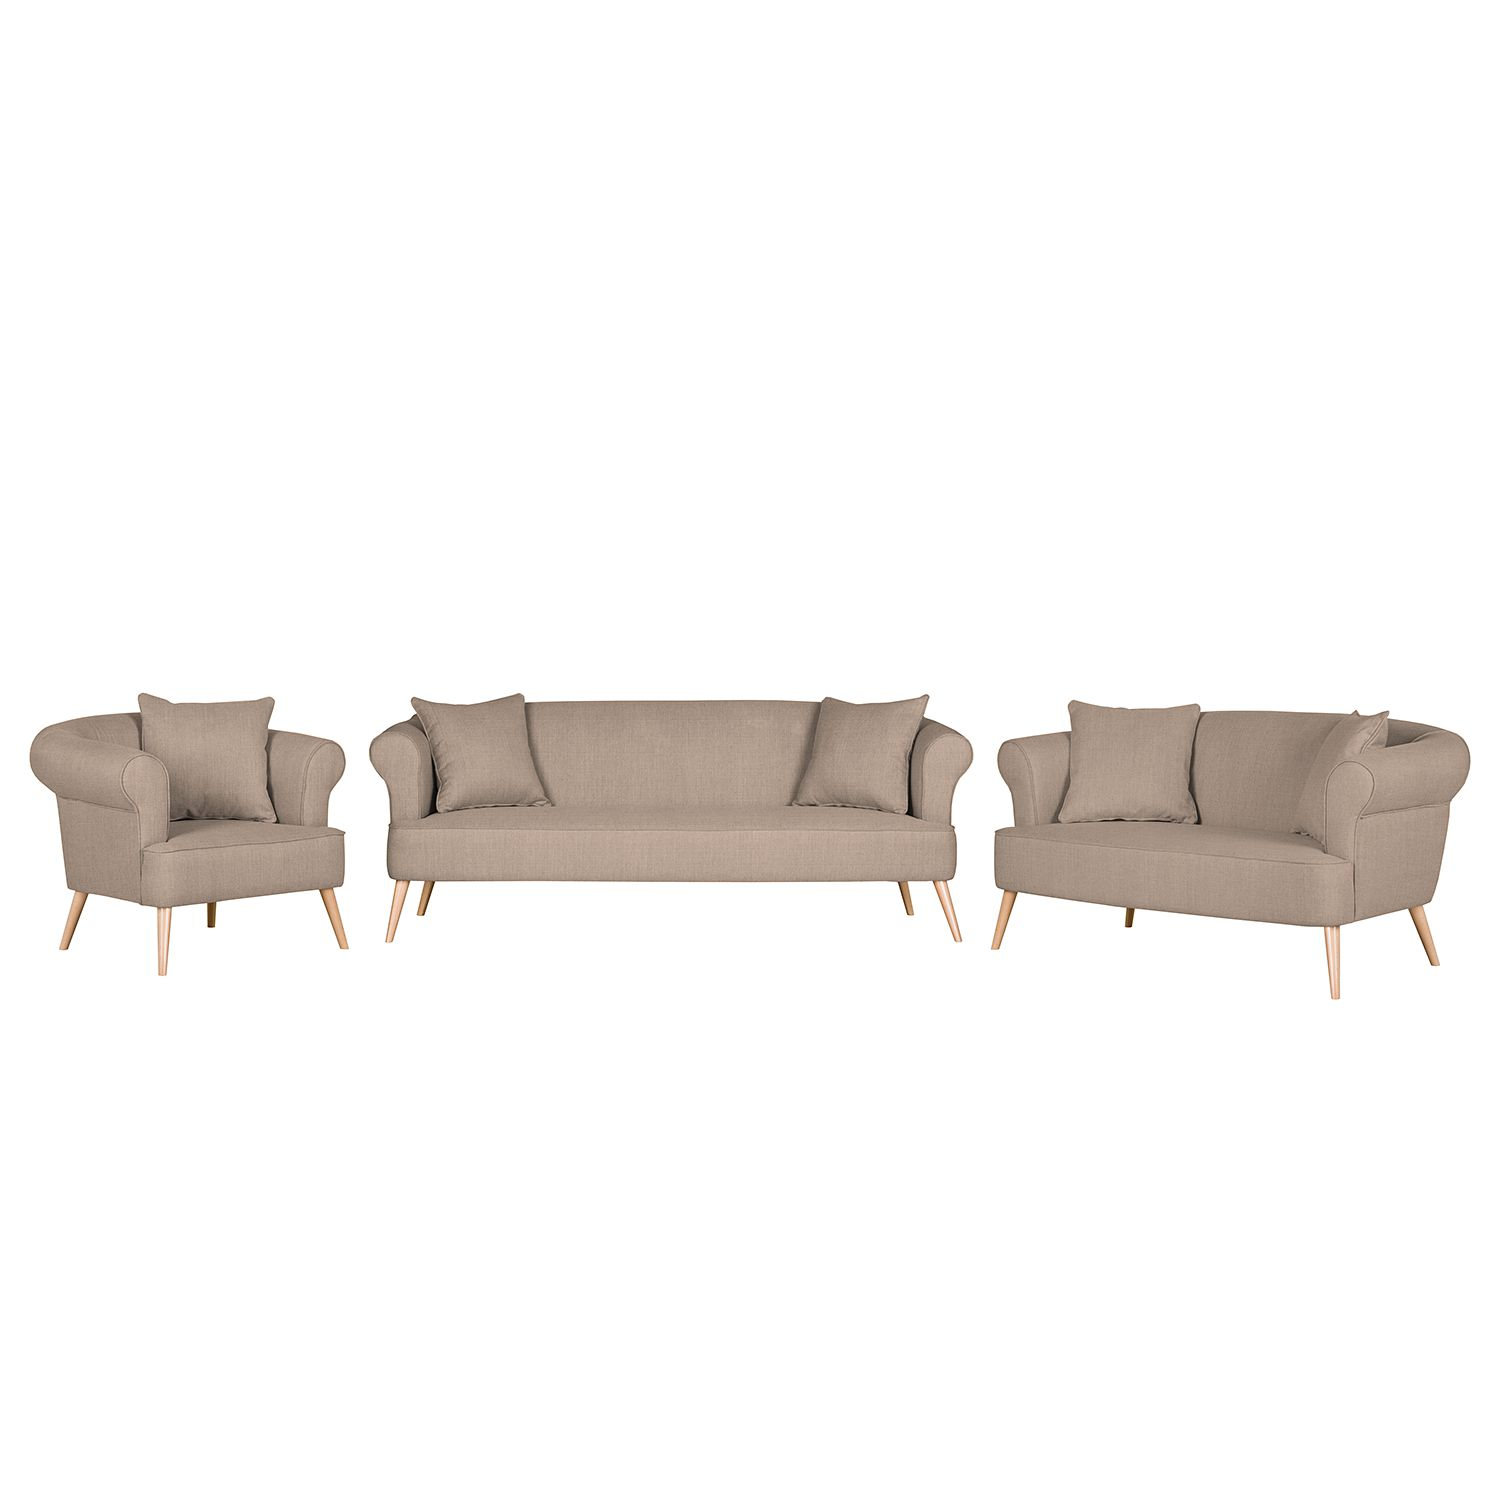 home24 Polstergarnitur Lilou (3-2-1) Webstoff | Wohnzimmer > Sofas & Couches > Garnituren | Moerteens